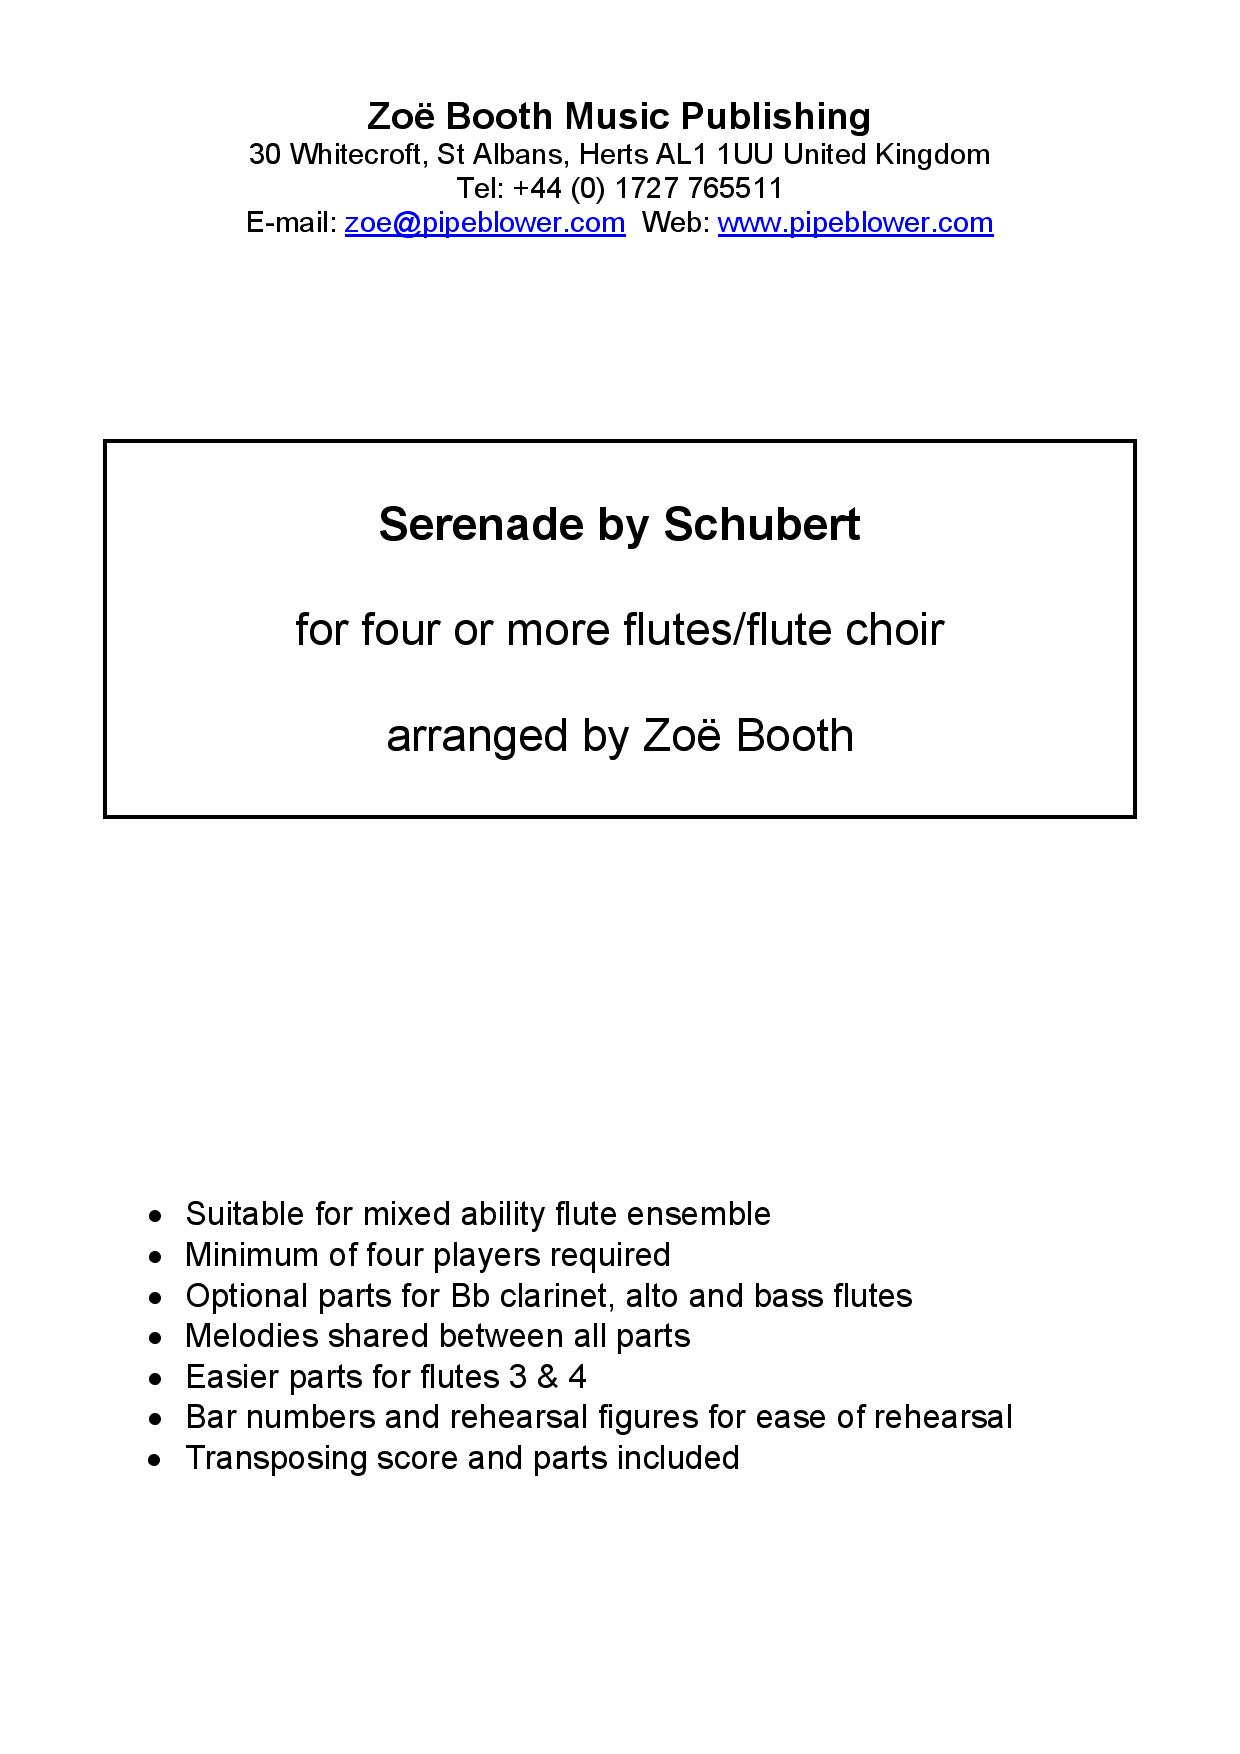 Serenade by Schubert  arranged by Zoë Booth for four or more flutes/flute choir